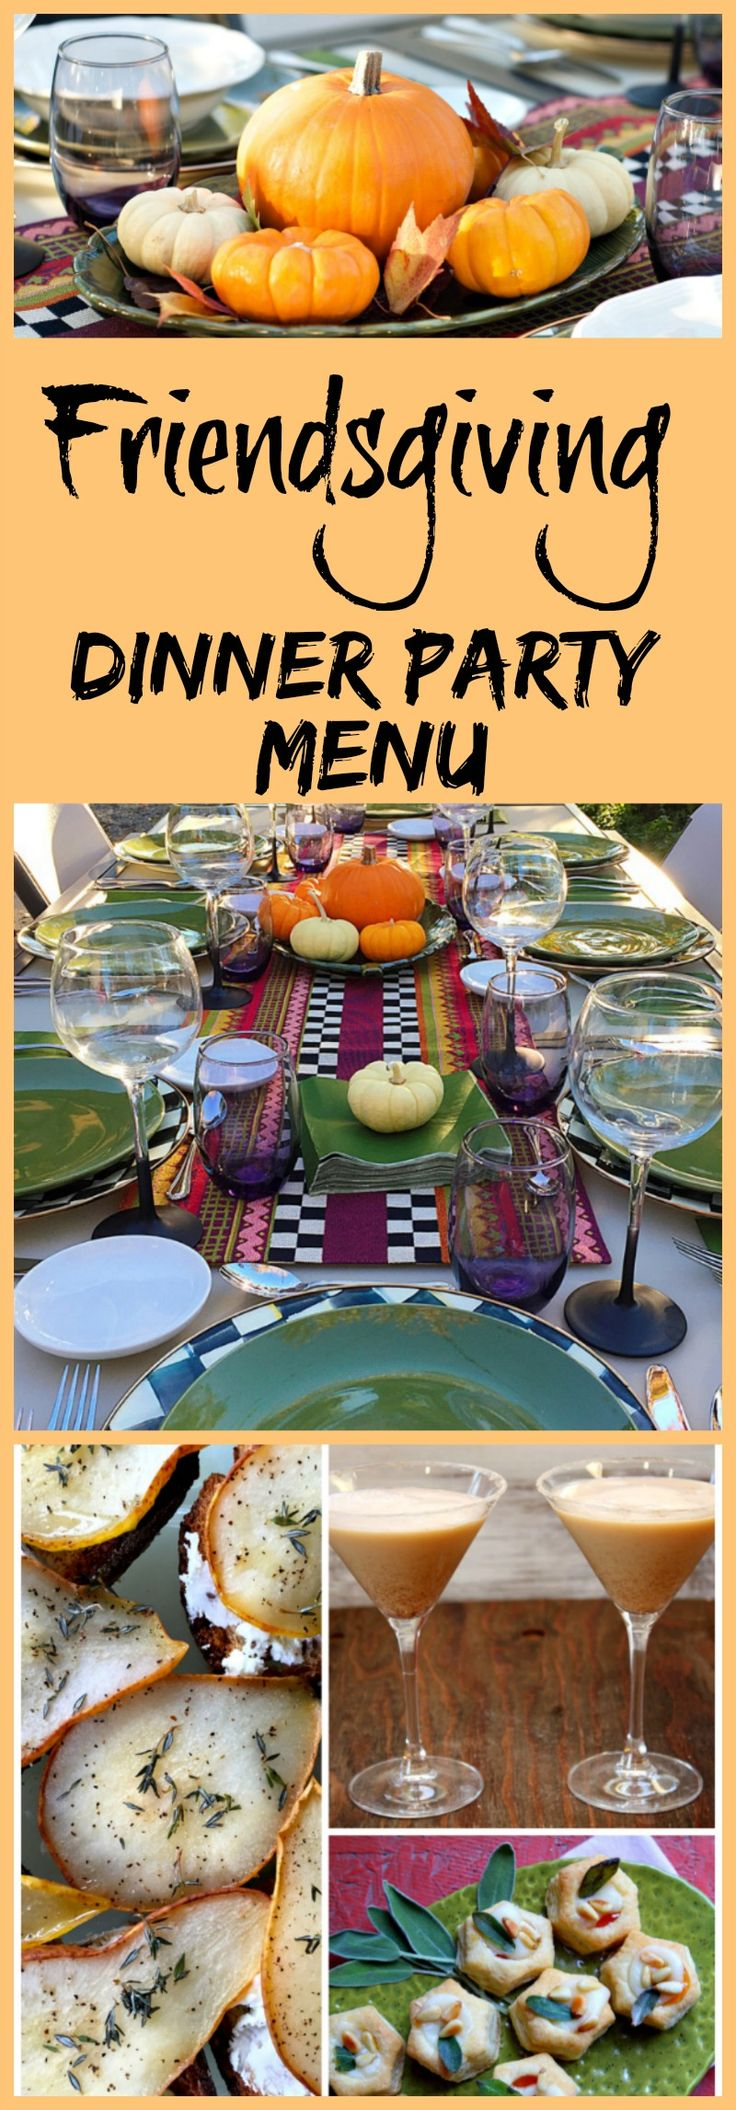 How to Host a Friendsgiving Dinner Party. Recipes, decor/tablescape ideas, and easy entertaining tips included for a fun fall dinner party with friends. Friendsgiving Dinner Party Menu